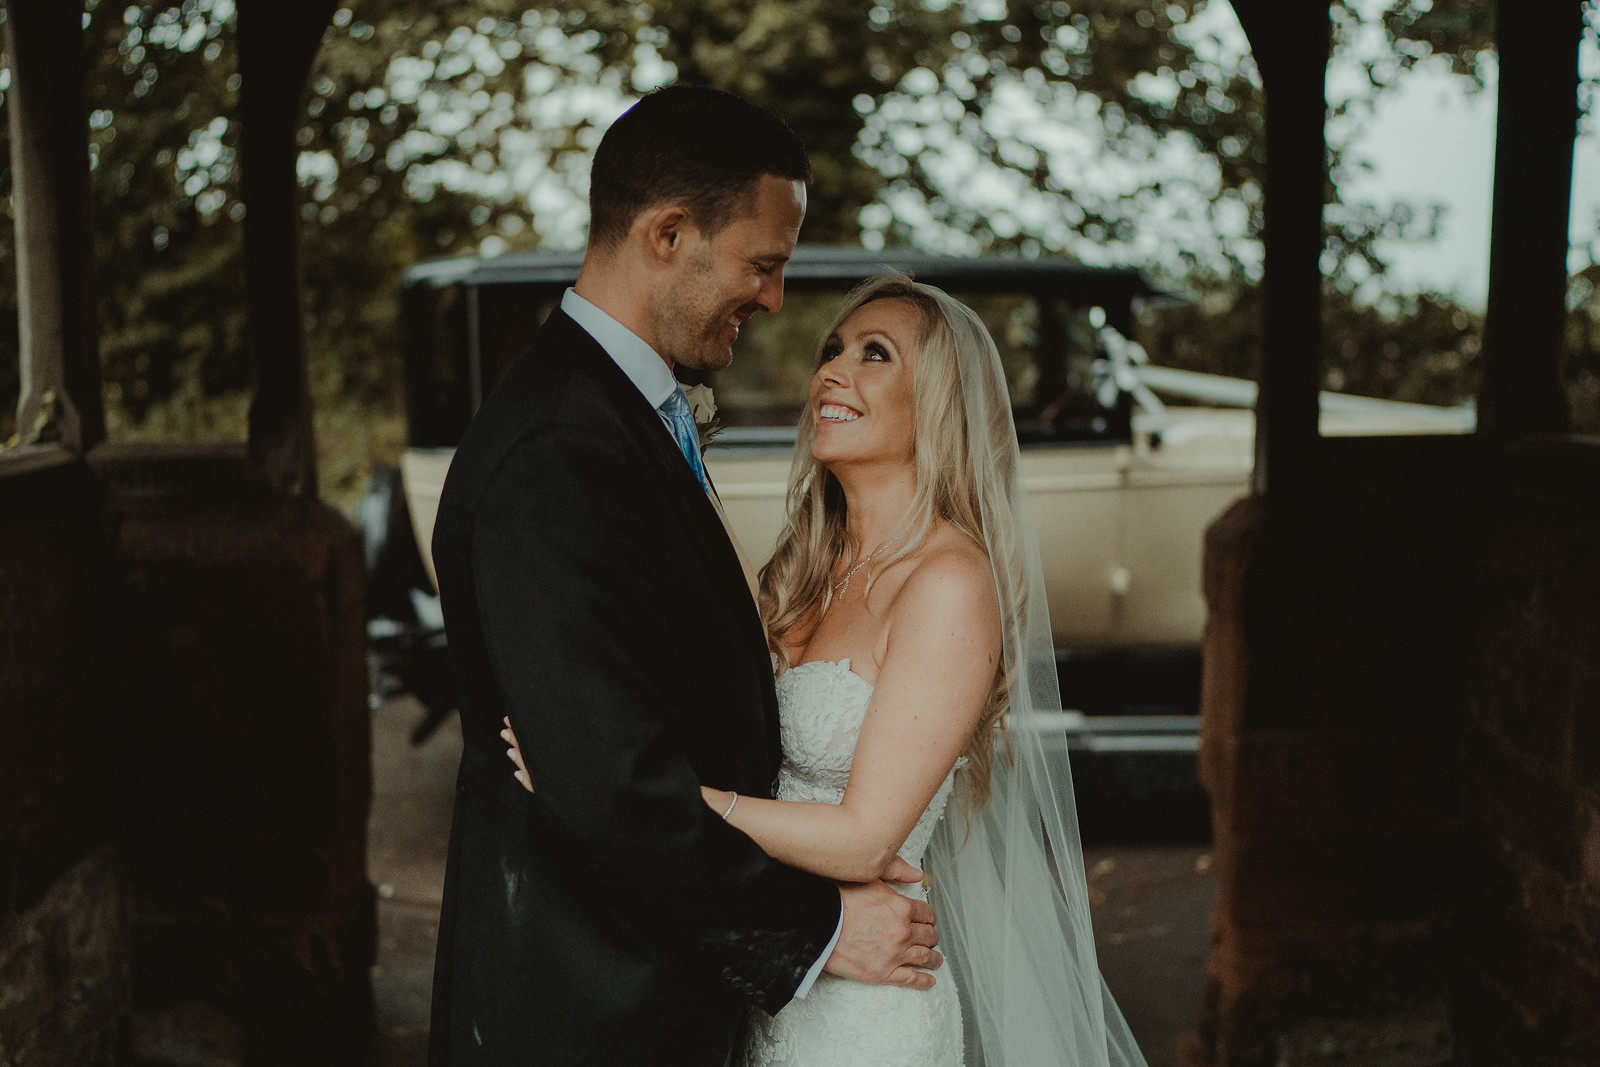 Bride and groom look at each other and smile underneath an archway